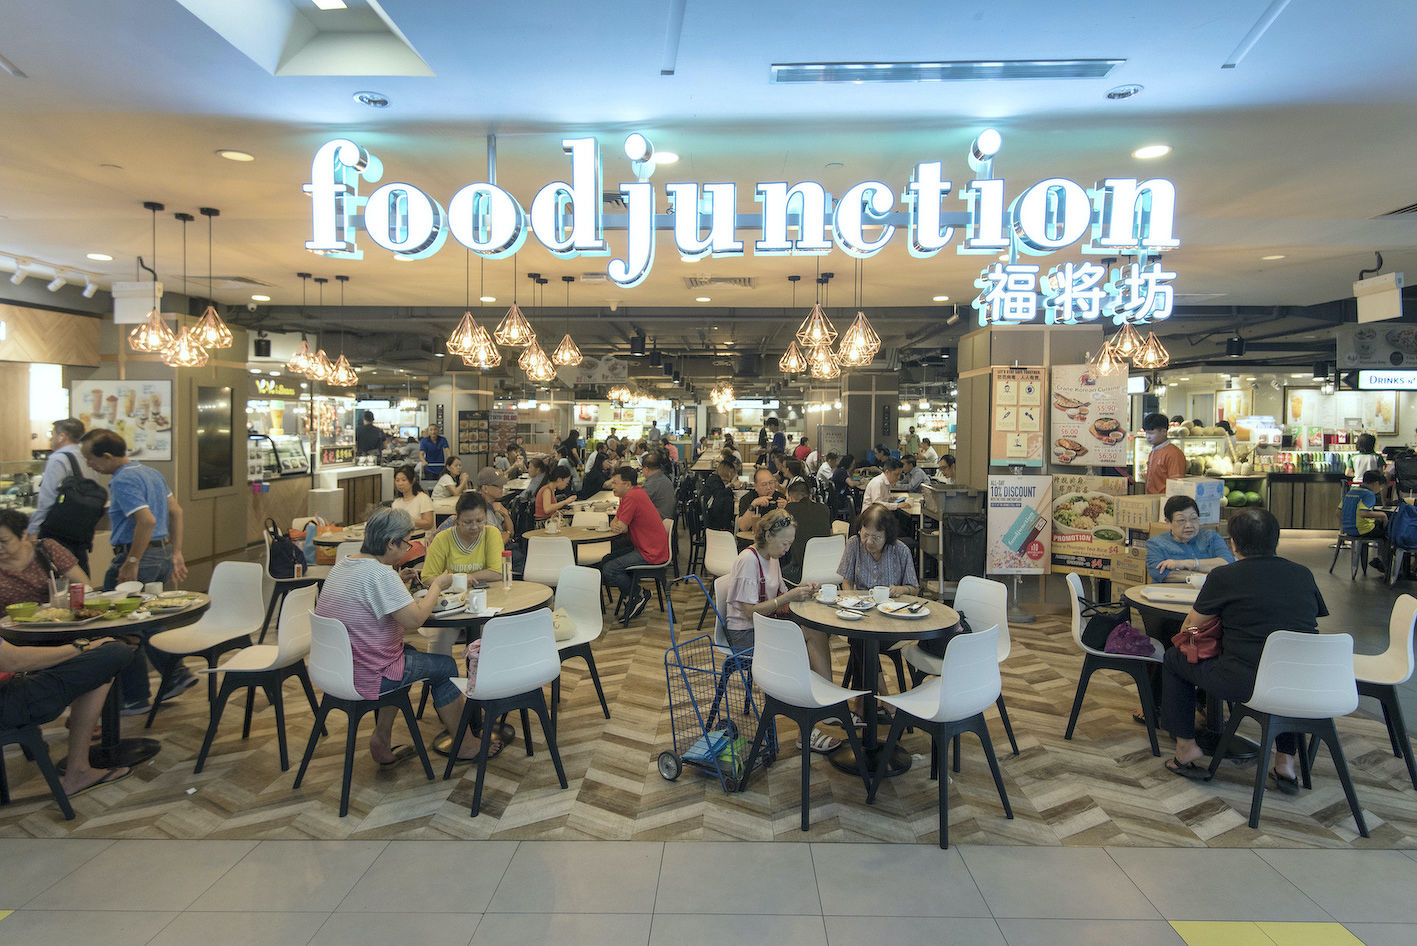 EDGEPROP SINGAPORE -  BreadTalk Group acquired Food Junction